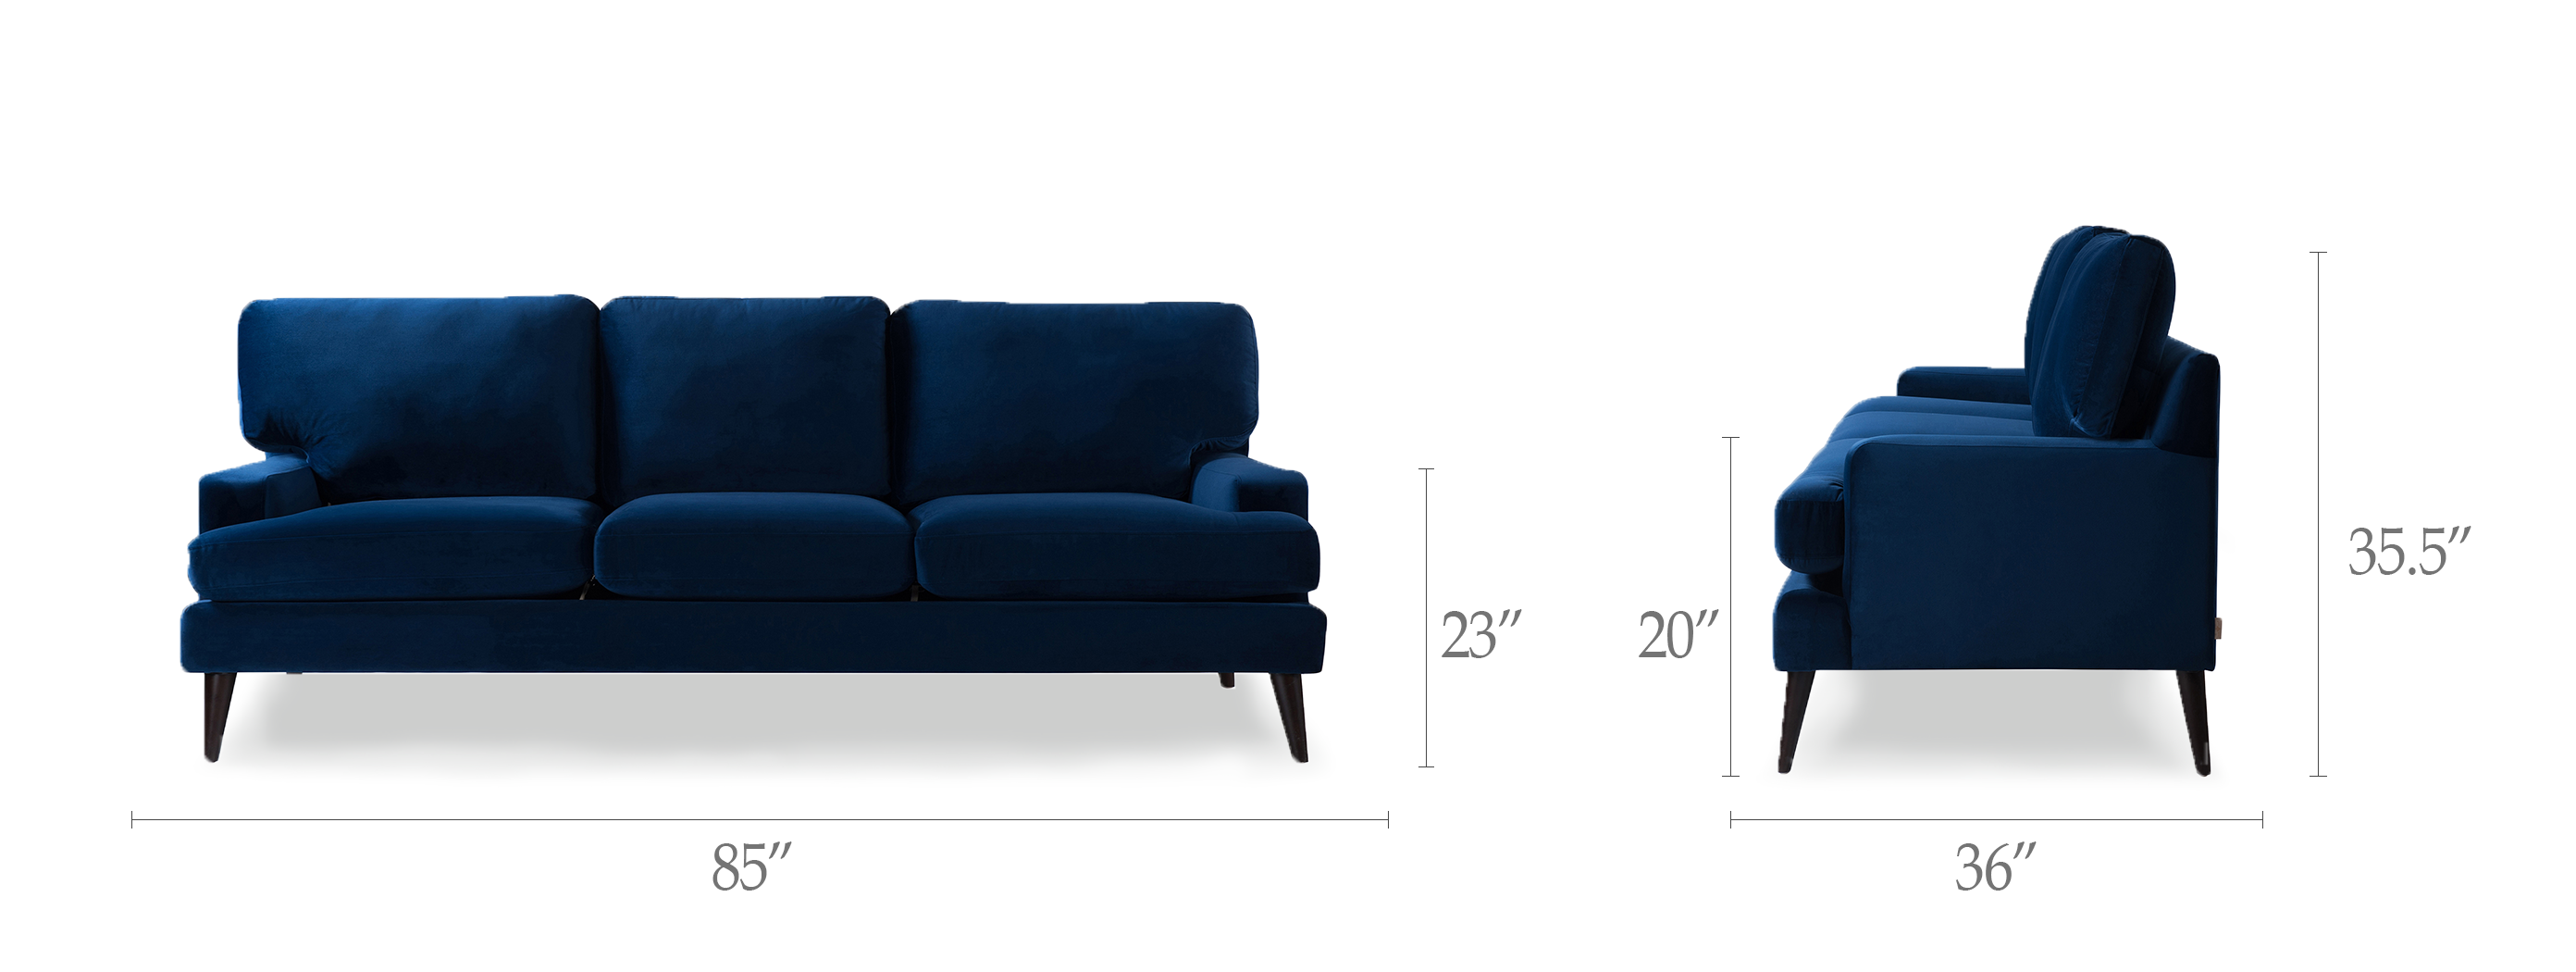 Enzo Lawson Sofa